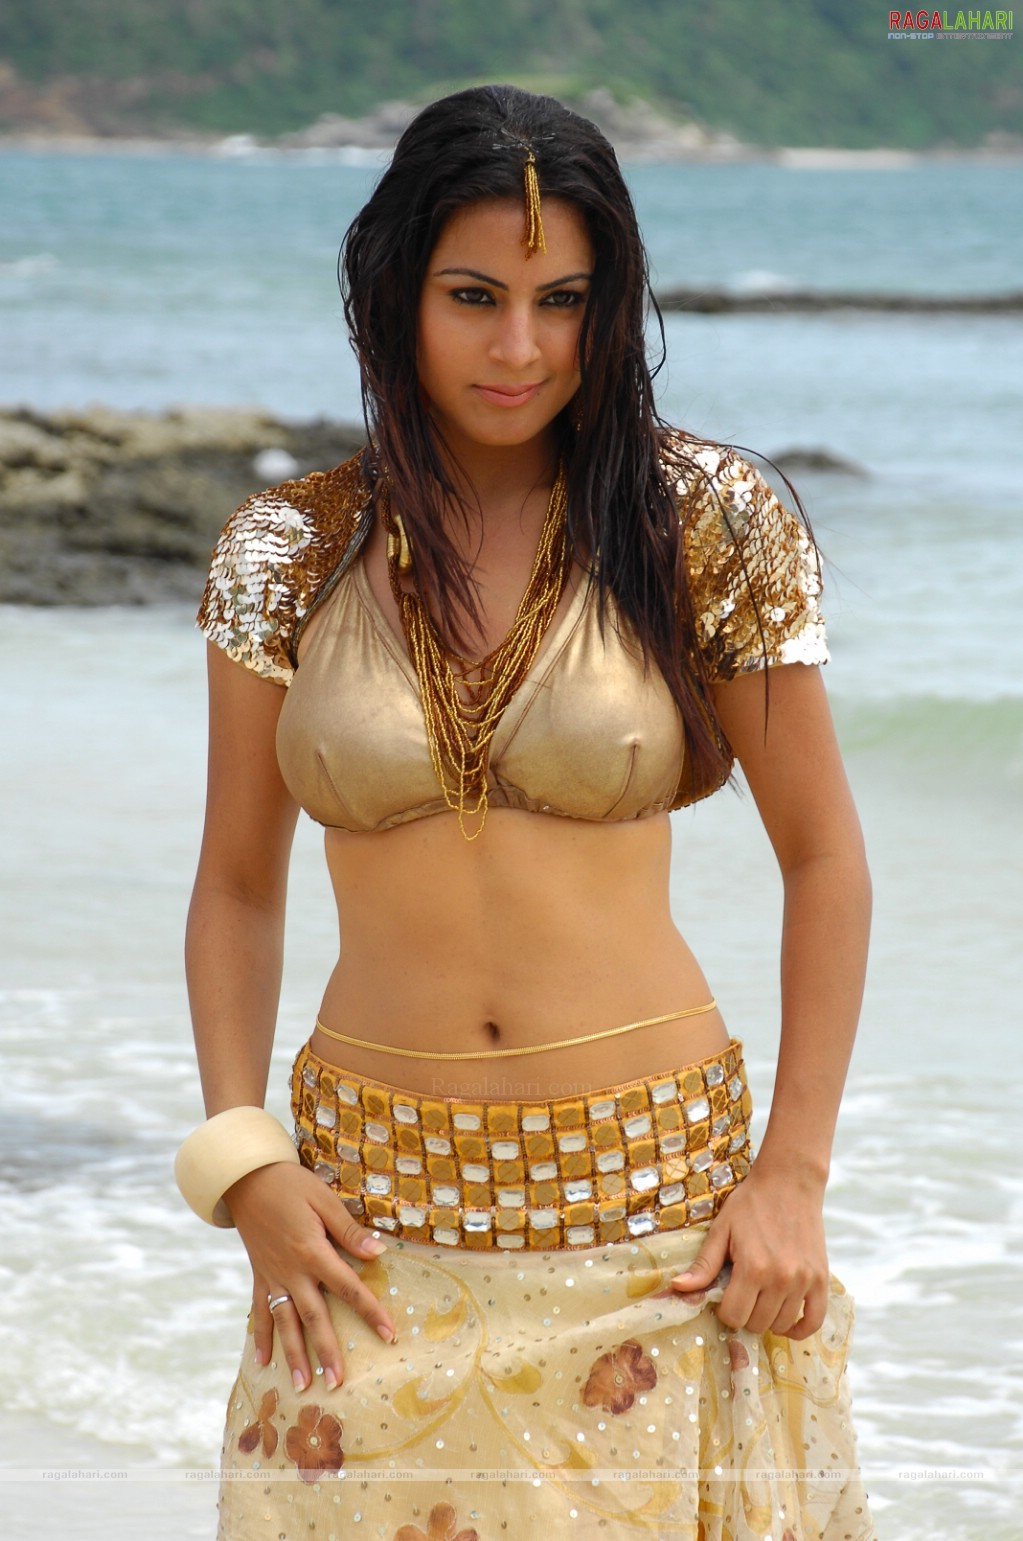 Shraddha Arya hot picture